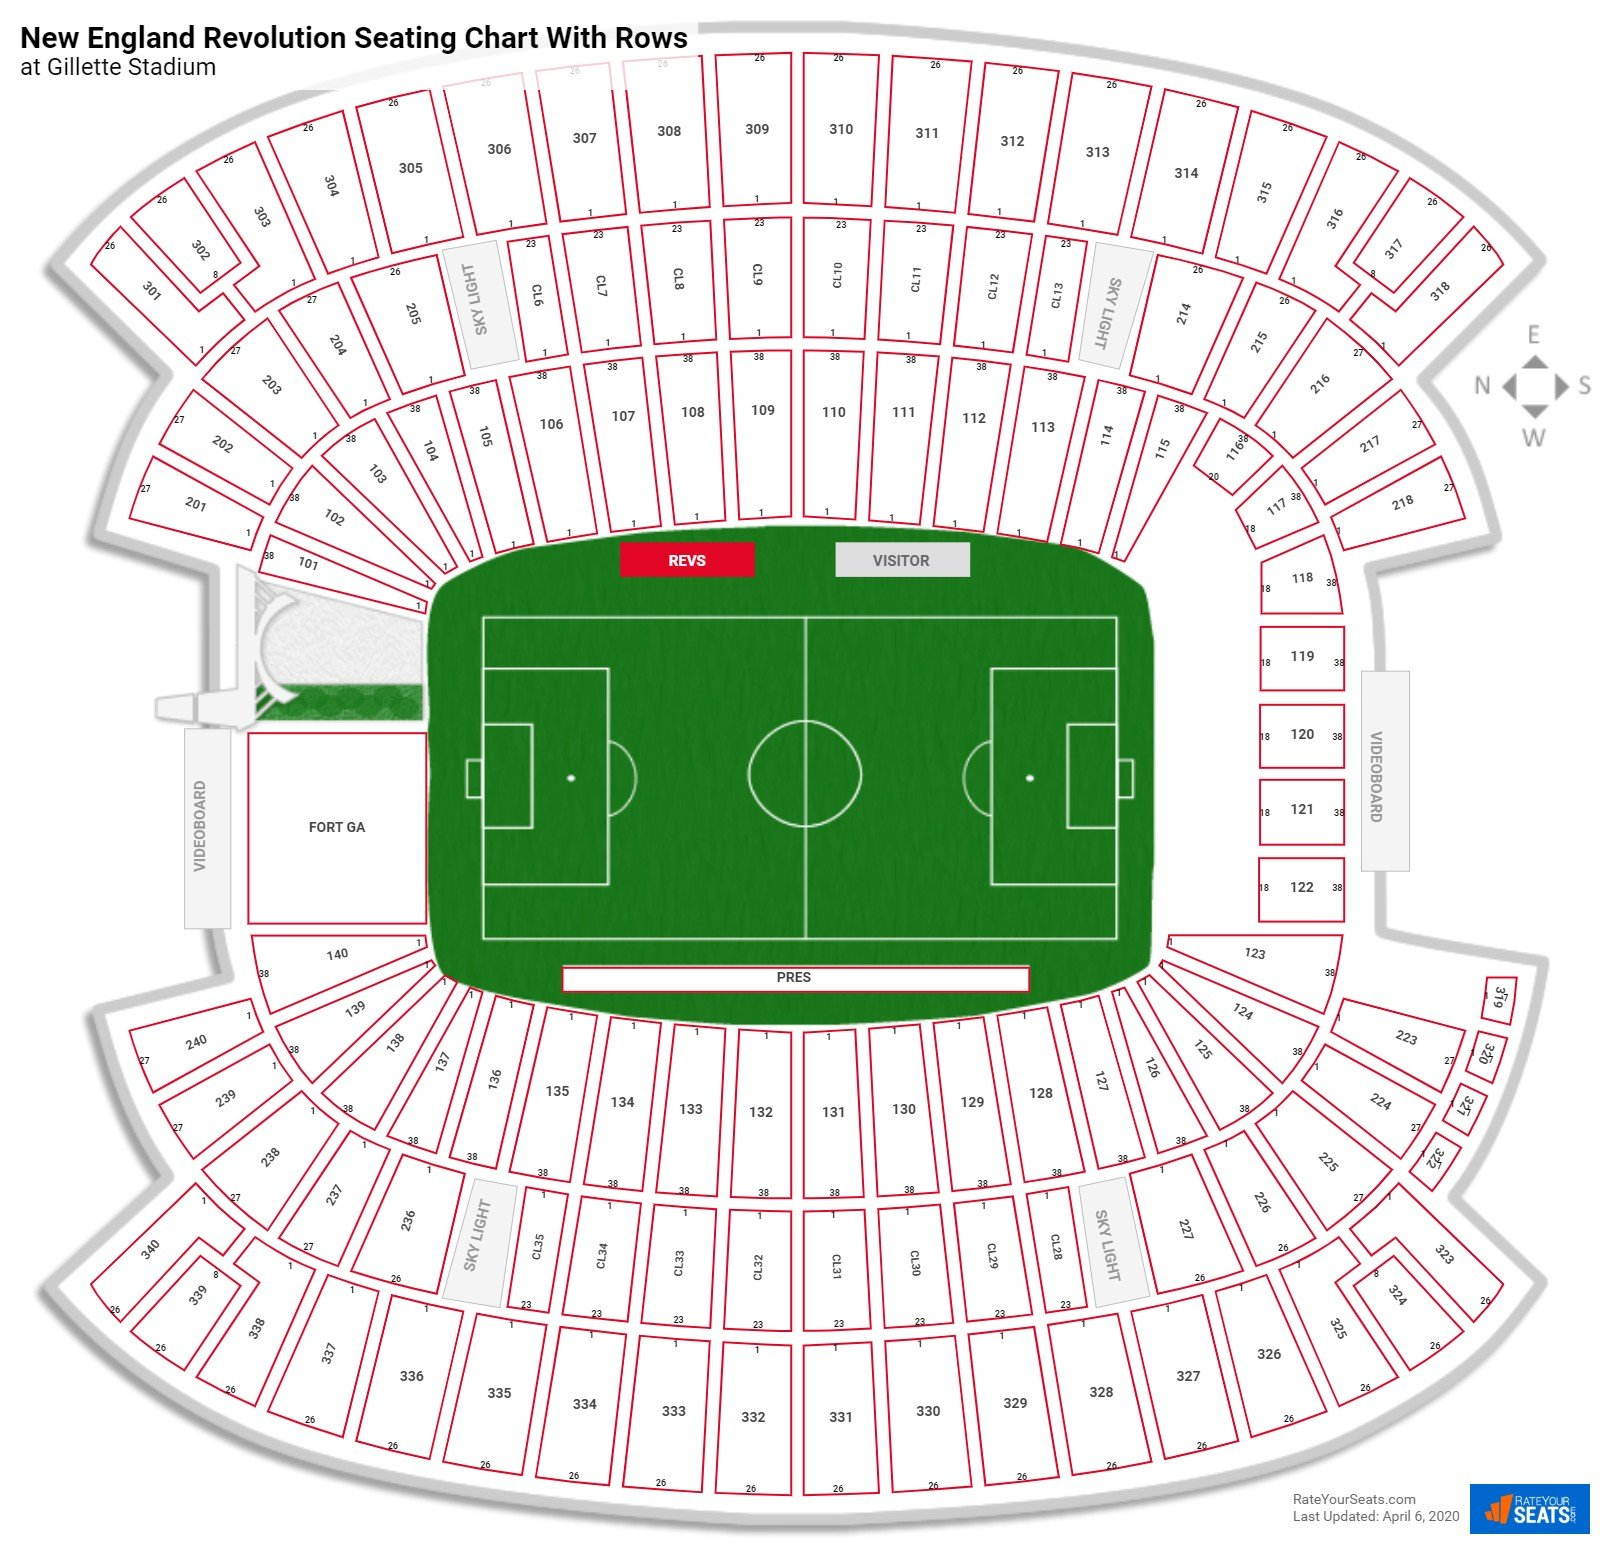 Gillette Stadium seating chart with rows soccer